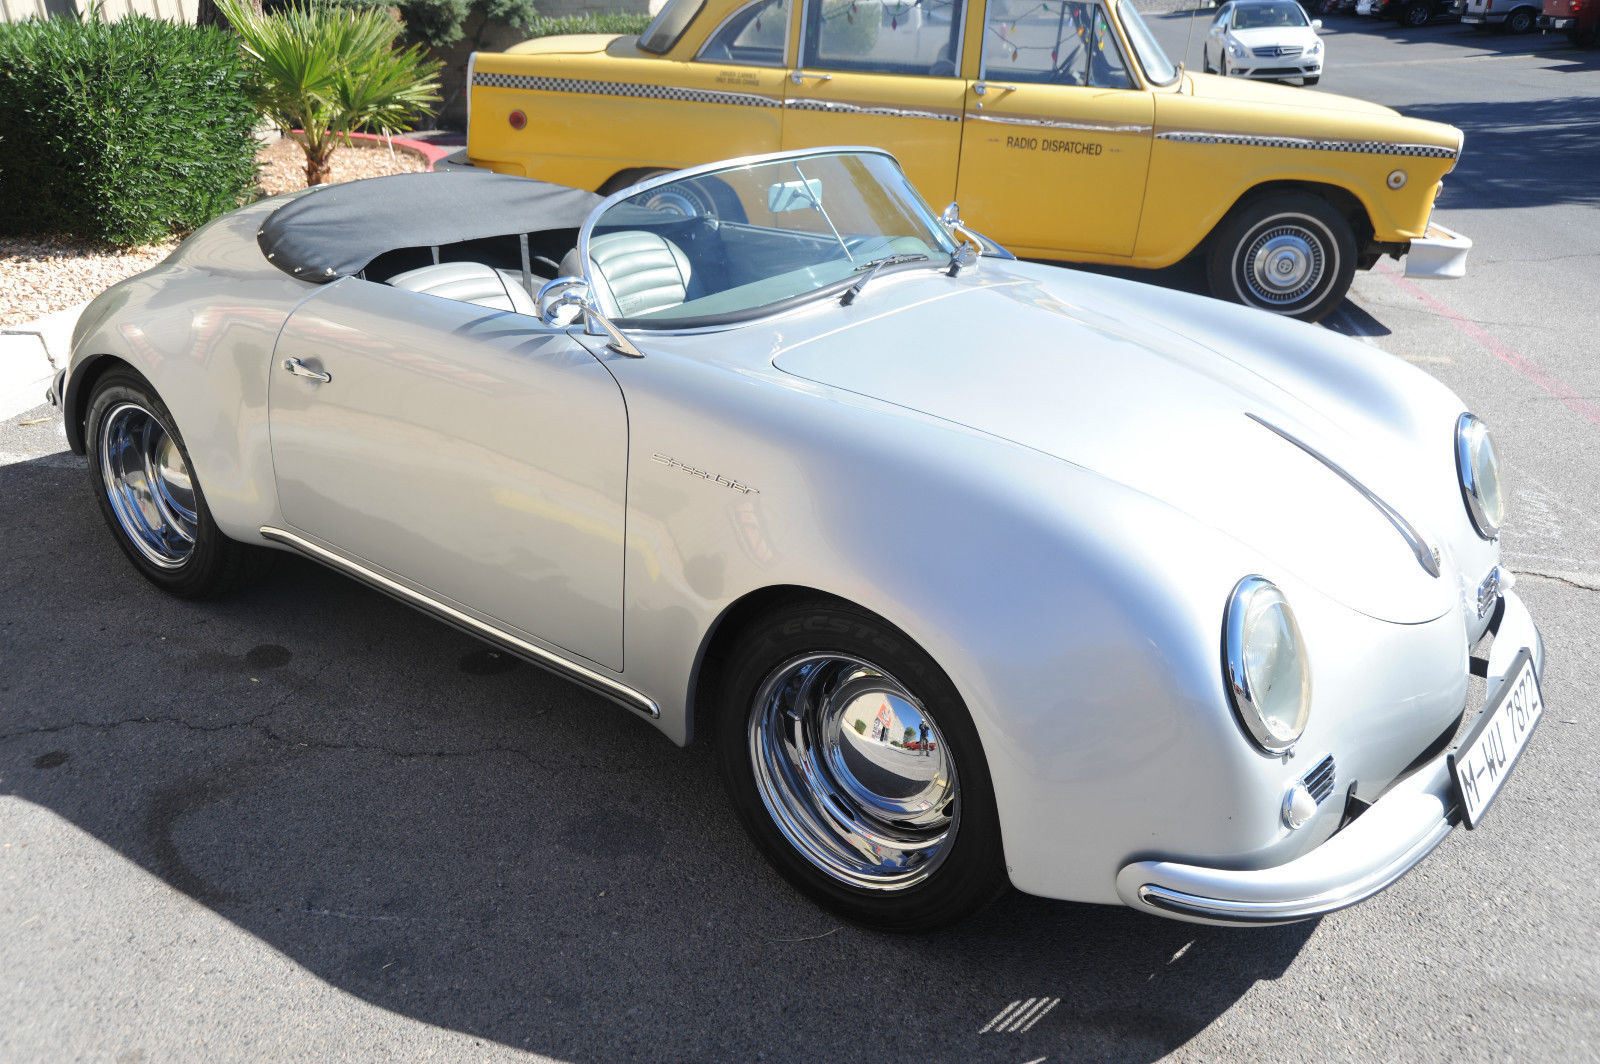 1957 Porsche Speedster 356 Hot Rod City Hot Rod City